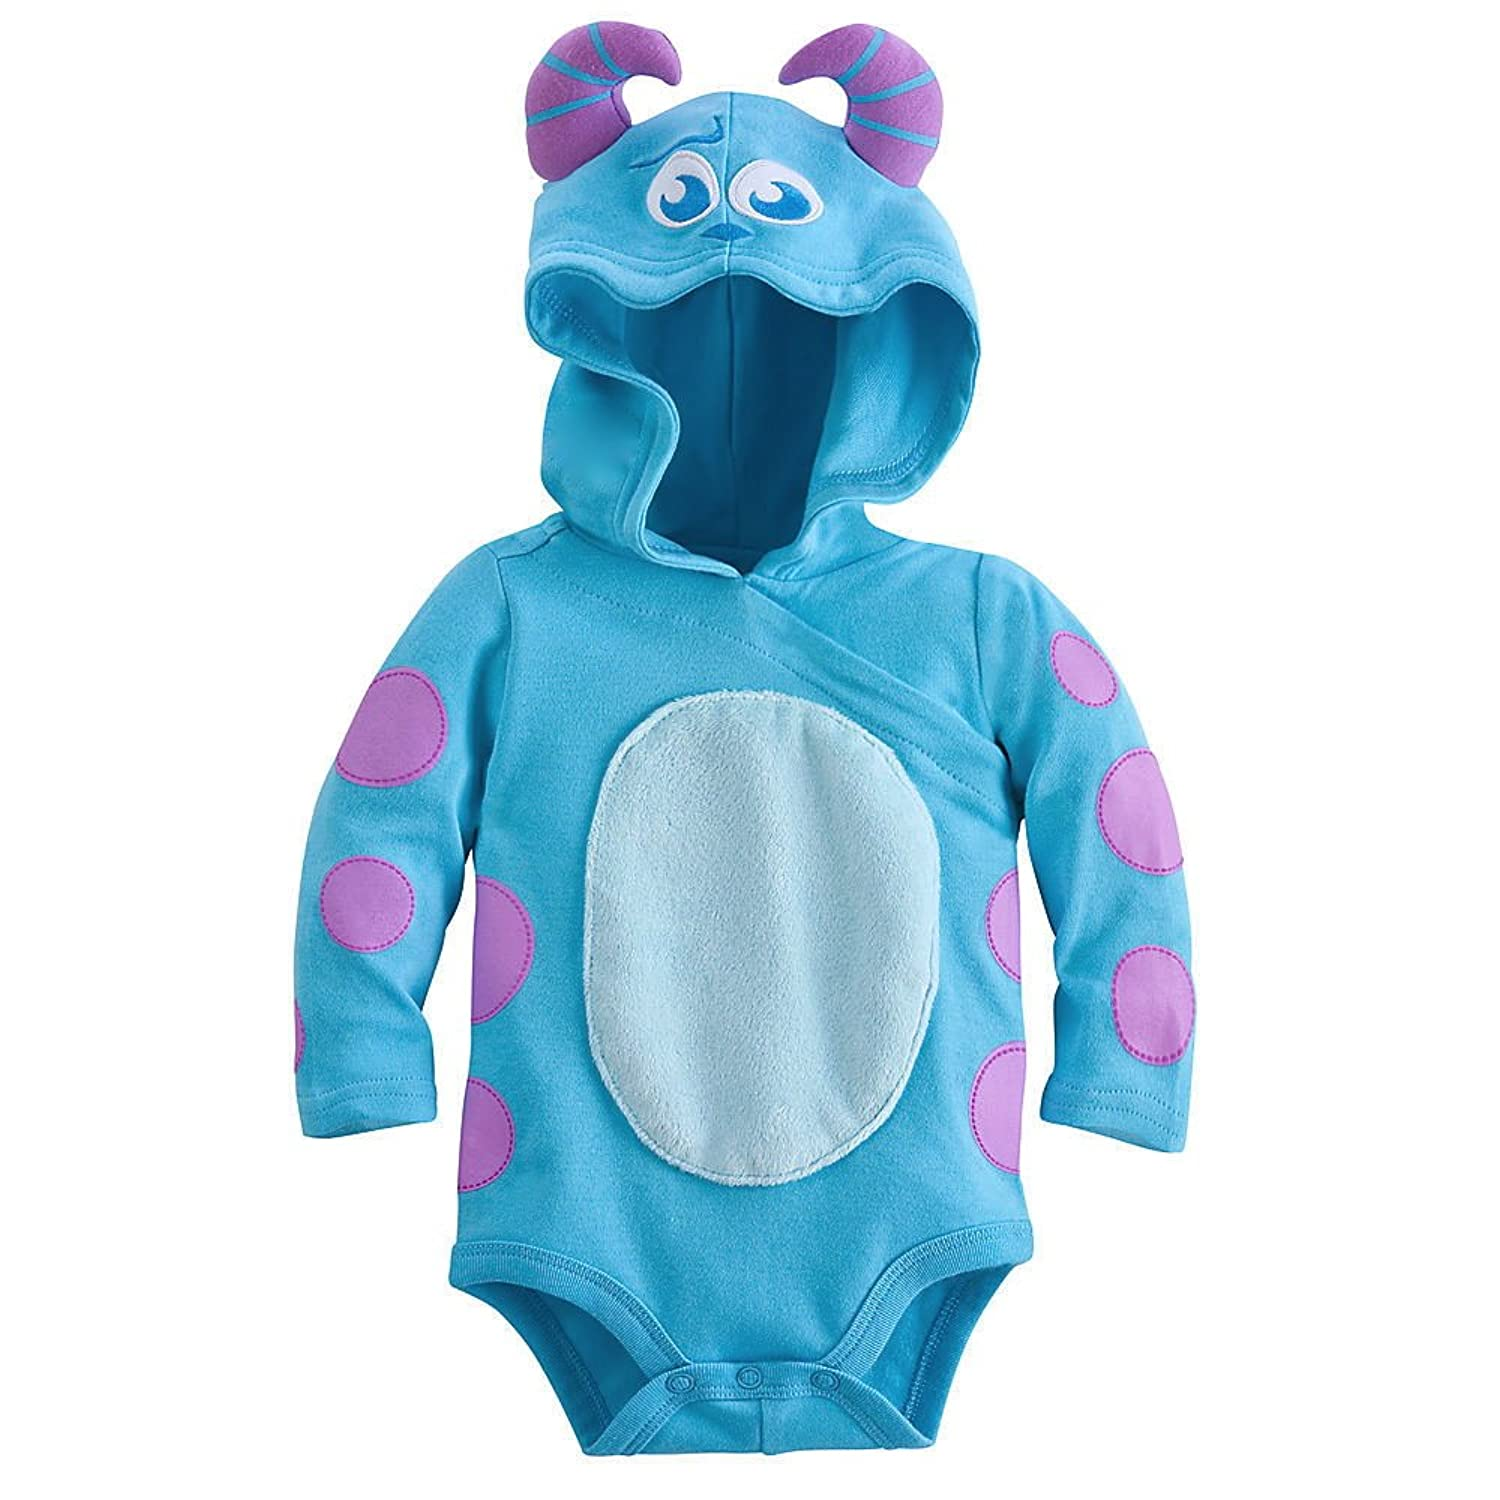 amazoncom disney sulley monsters inc baby halloween costume bodysuit hooded size 12 18 months clothing - Halloween Costume Monster